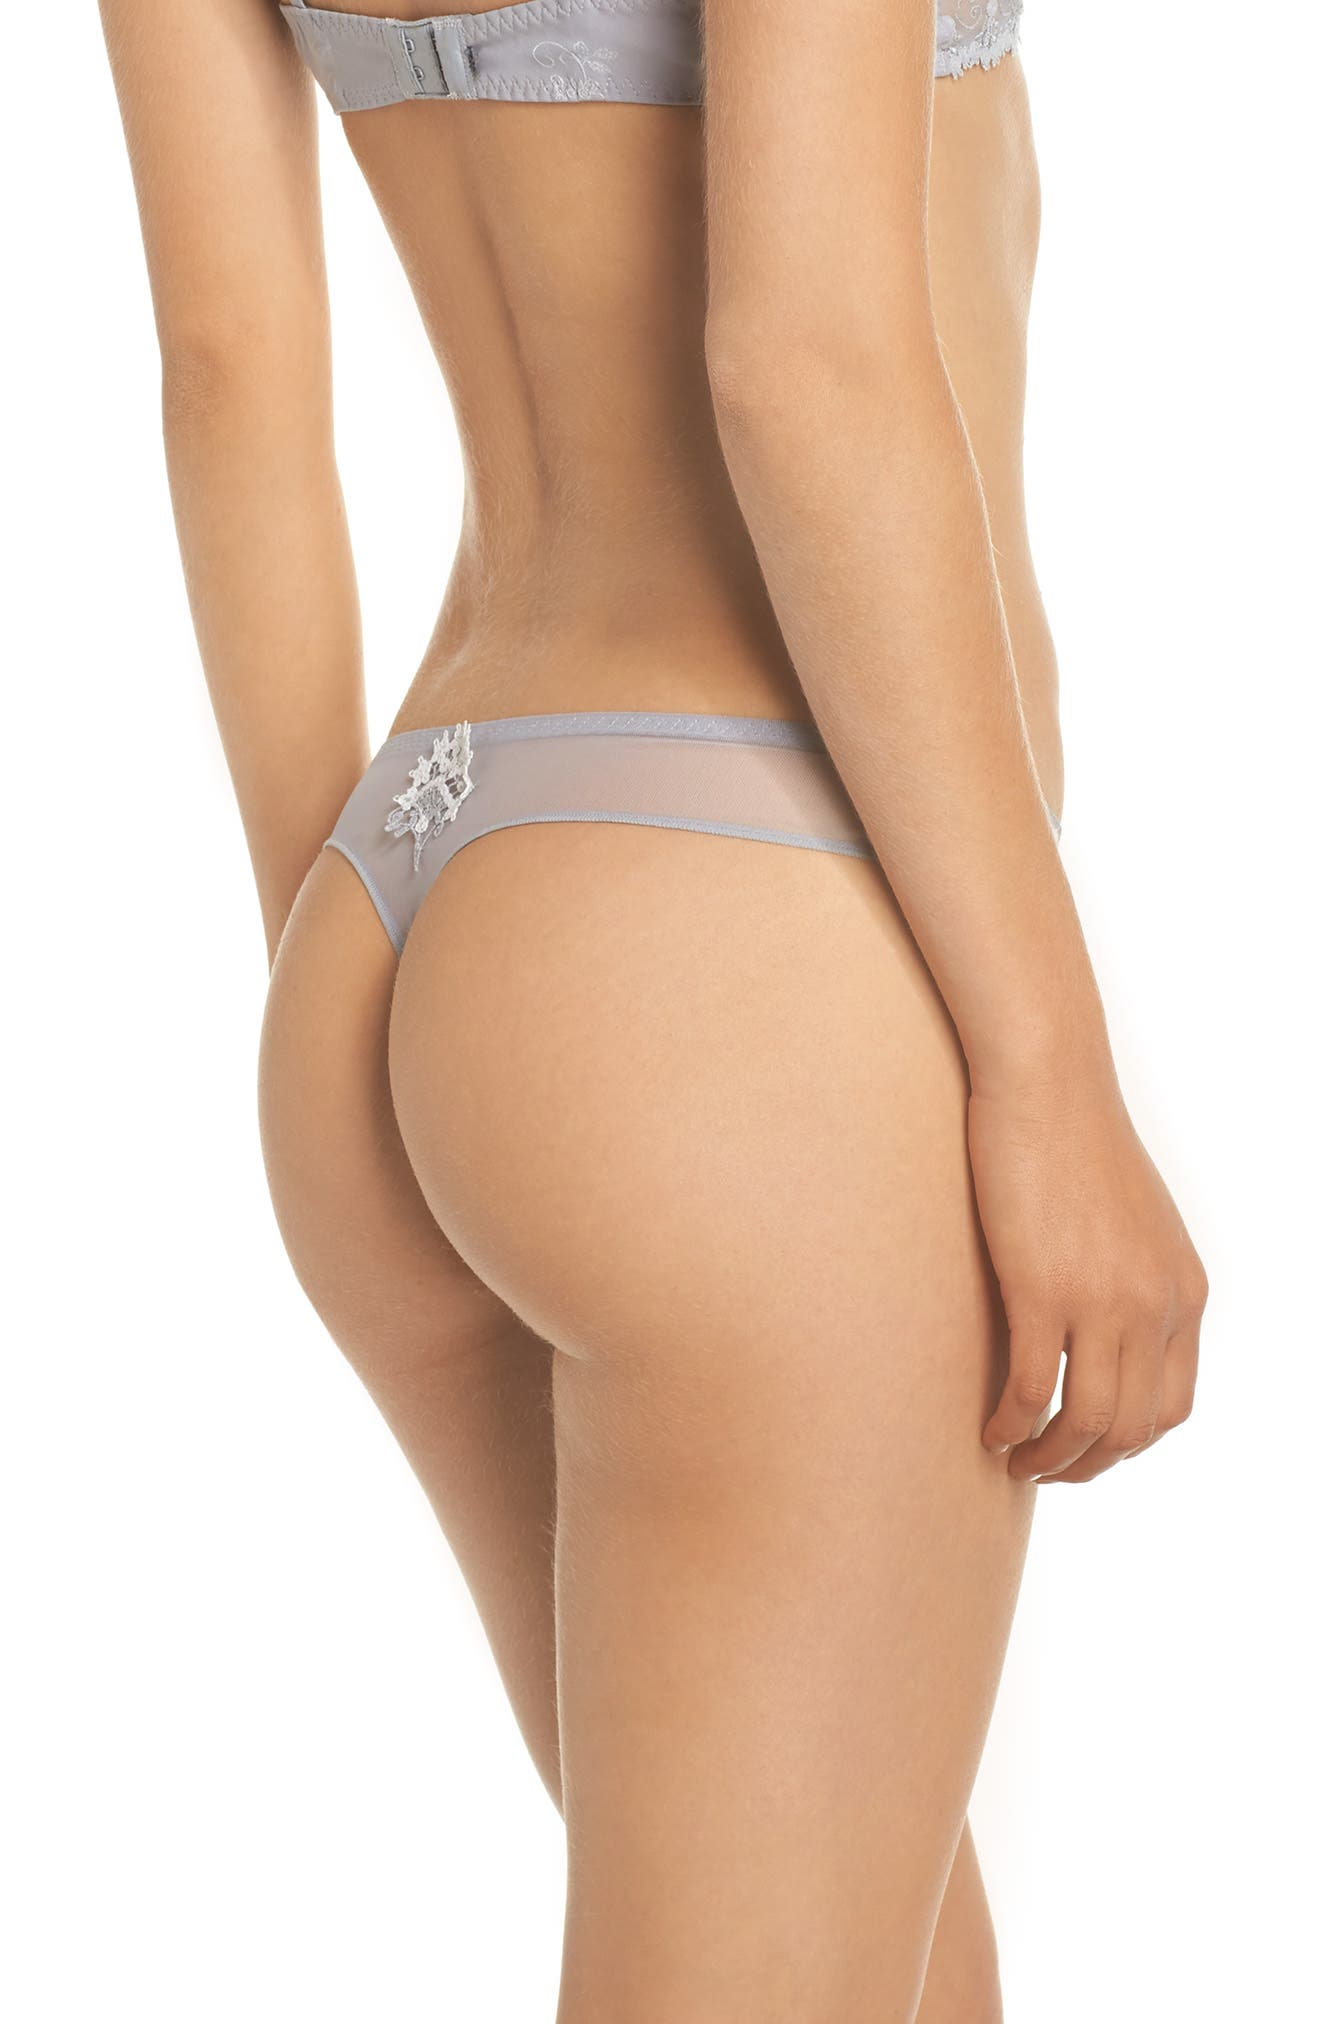 'Wish' Embroidered Tanga Thong,                             Alternate thumbnail 2, color,                             020